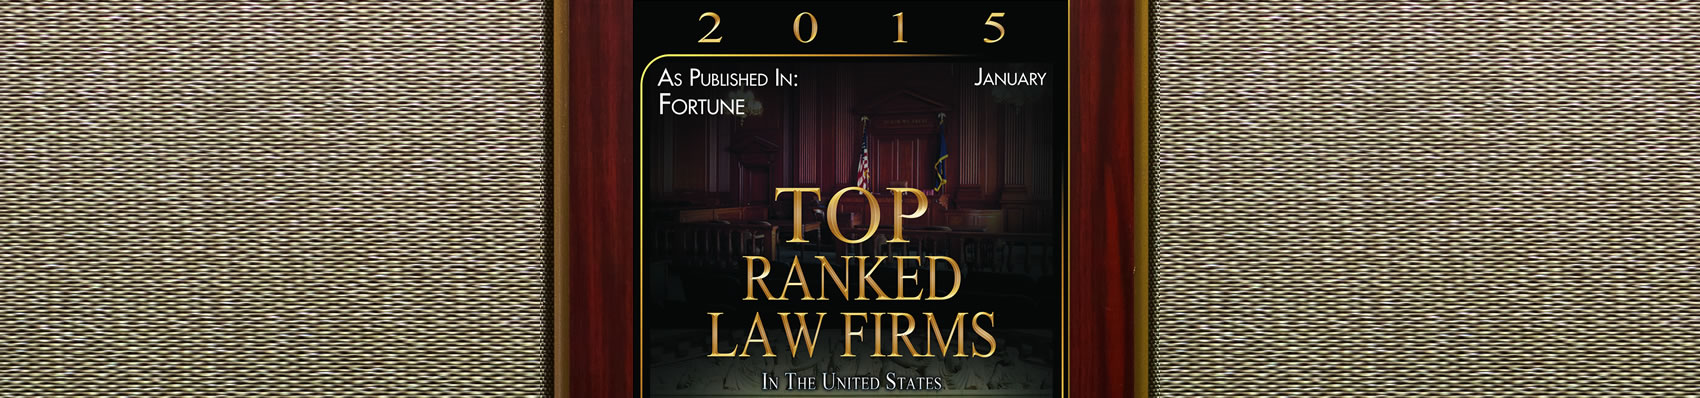 2015 Top Ranked Law Firm in US - Pitzer Snodgrass, P.C.